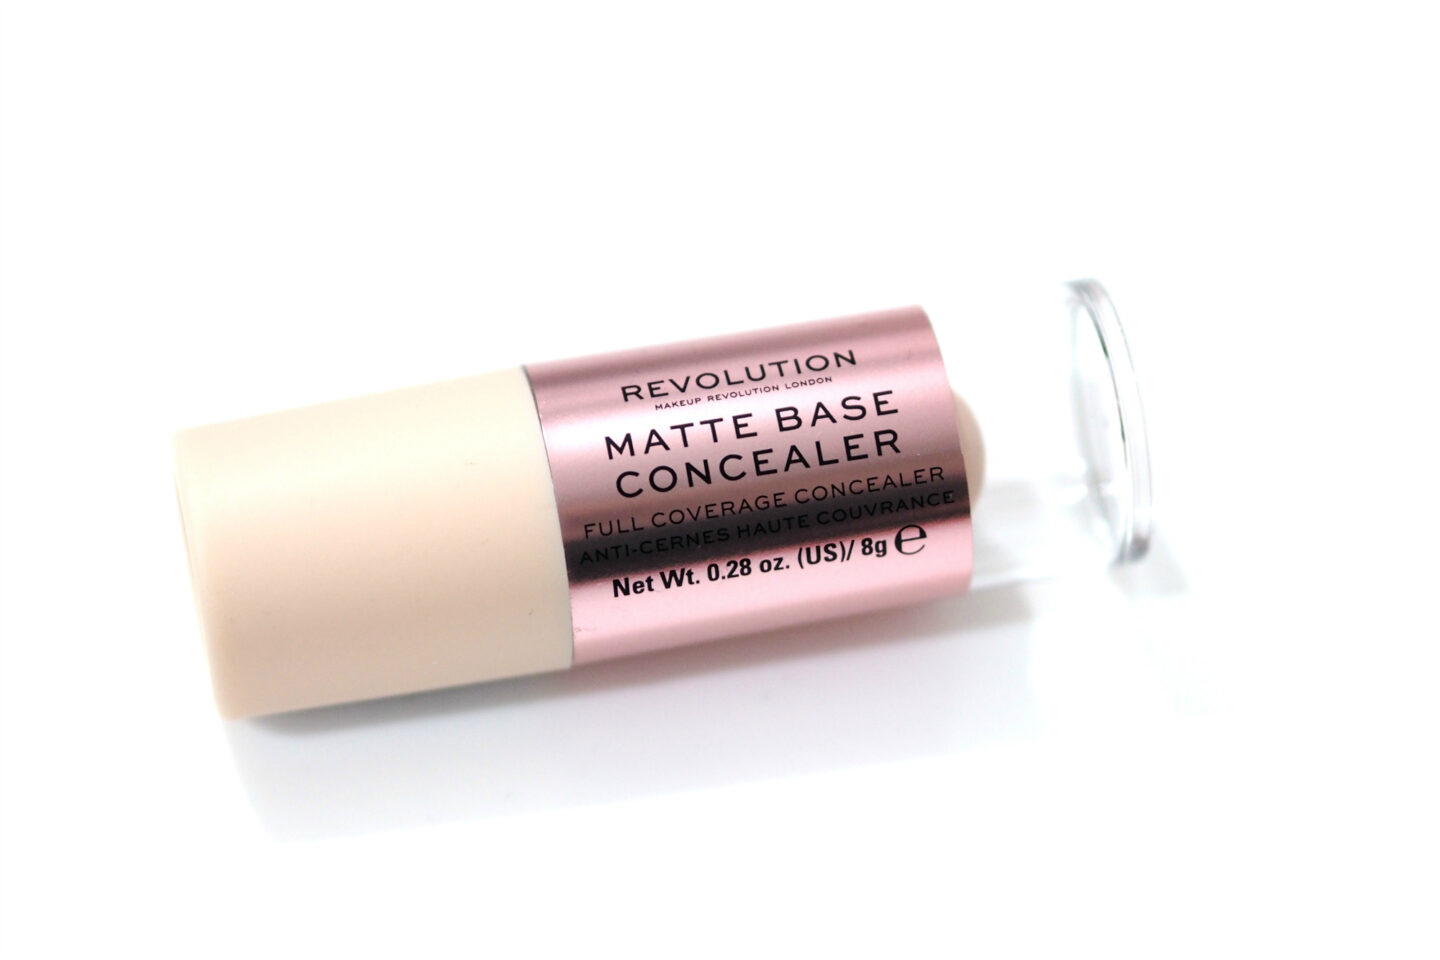 Revolution Matte Base Concealer Review / Swatches